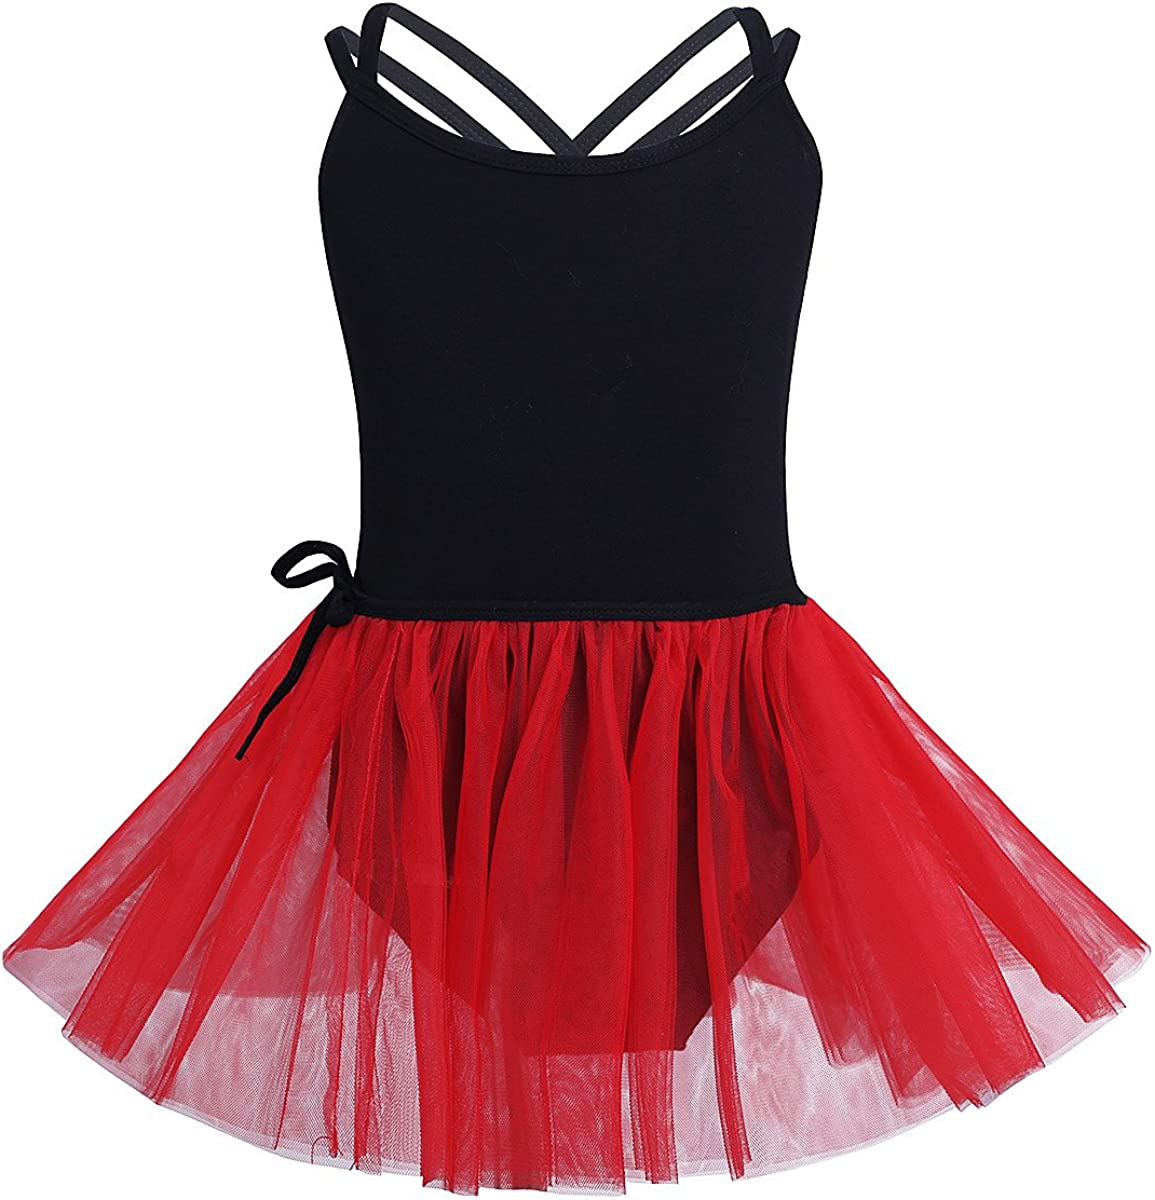 TiaoBug Girls Ballet Dress Outfits Cotton Short Sleeves Active Dance Gymnastics Leotard with Chiffon Skirt Dancewear Set